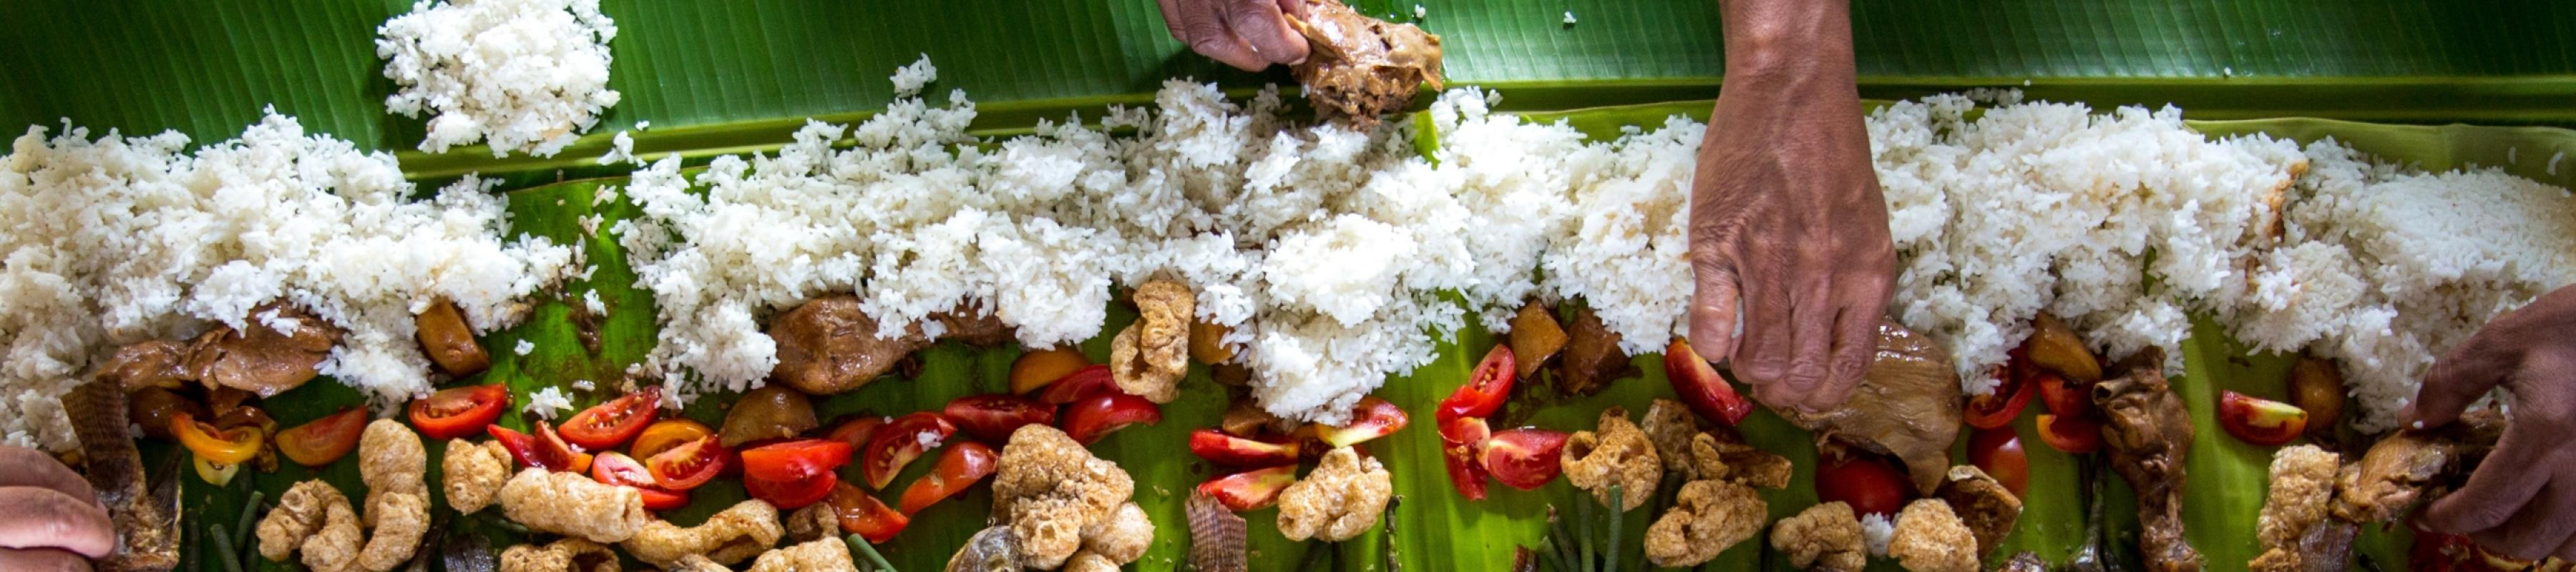 A meal of rice in the Philippines by Avel Chuklanov/Unsplash